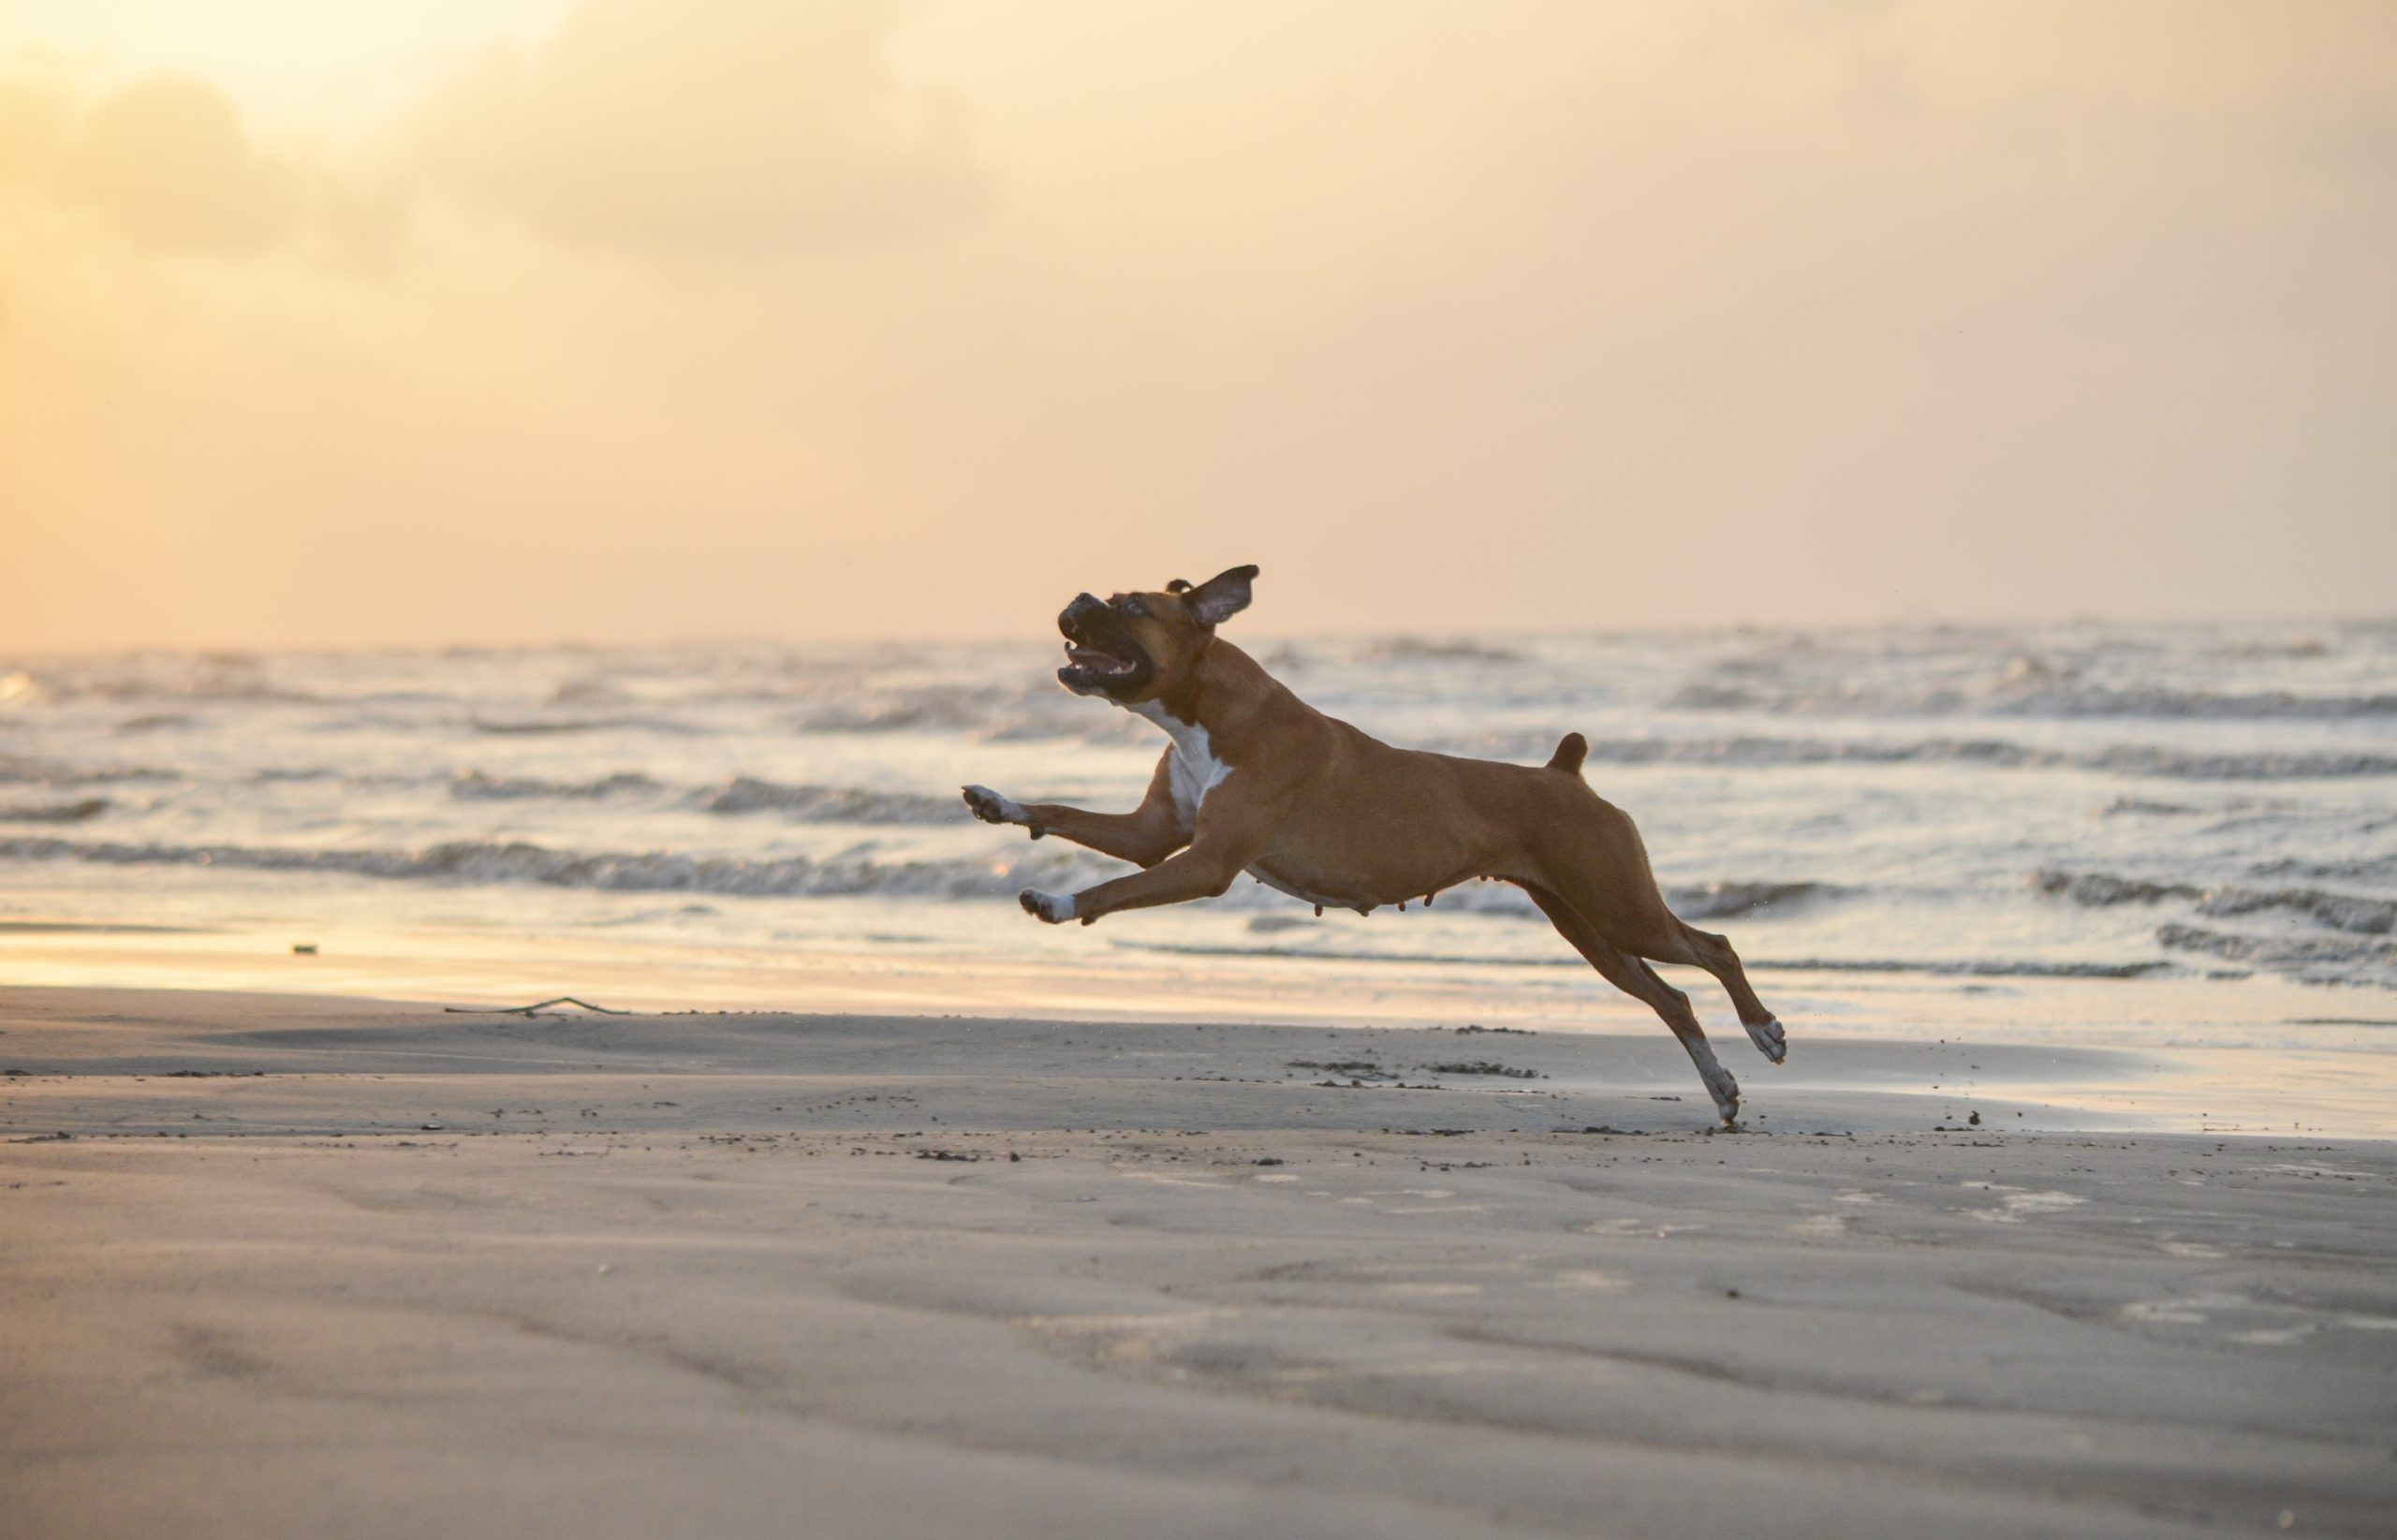 Top 10 Things To Do In Galveston With Your Pet